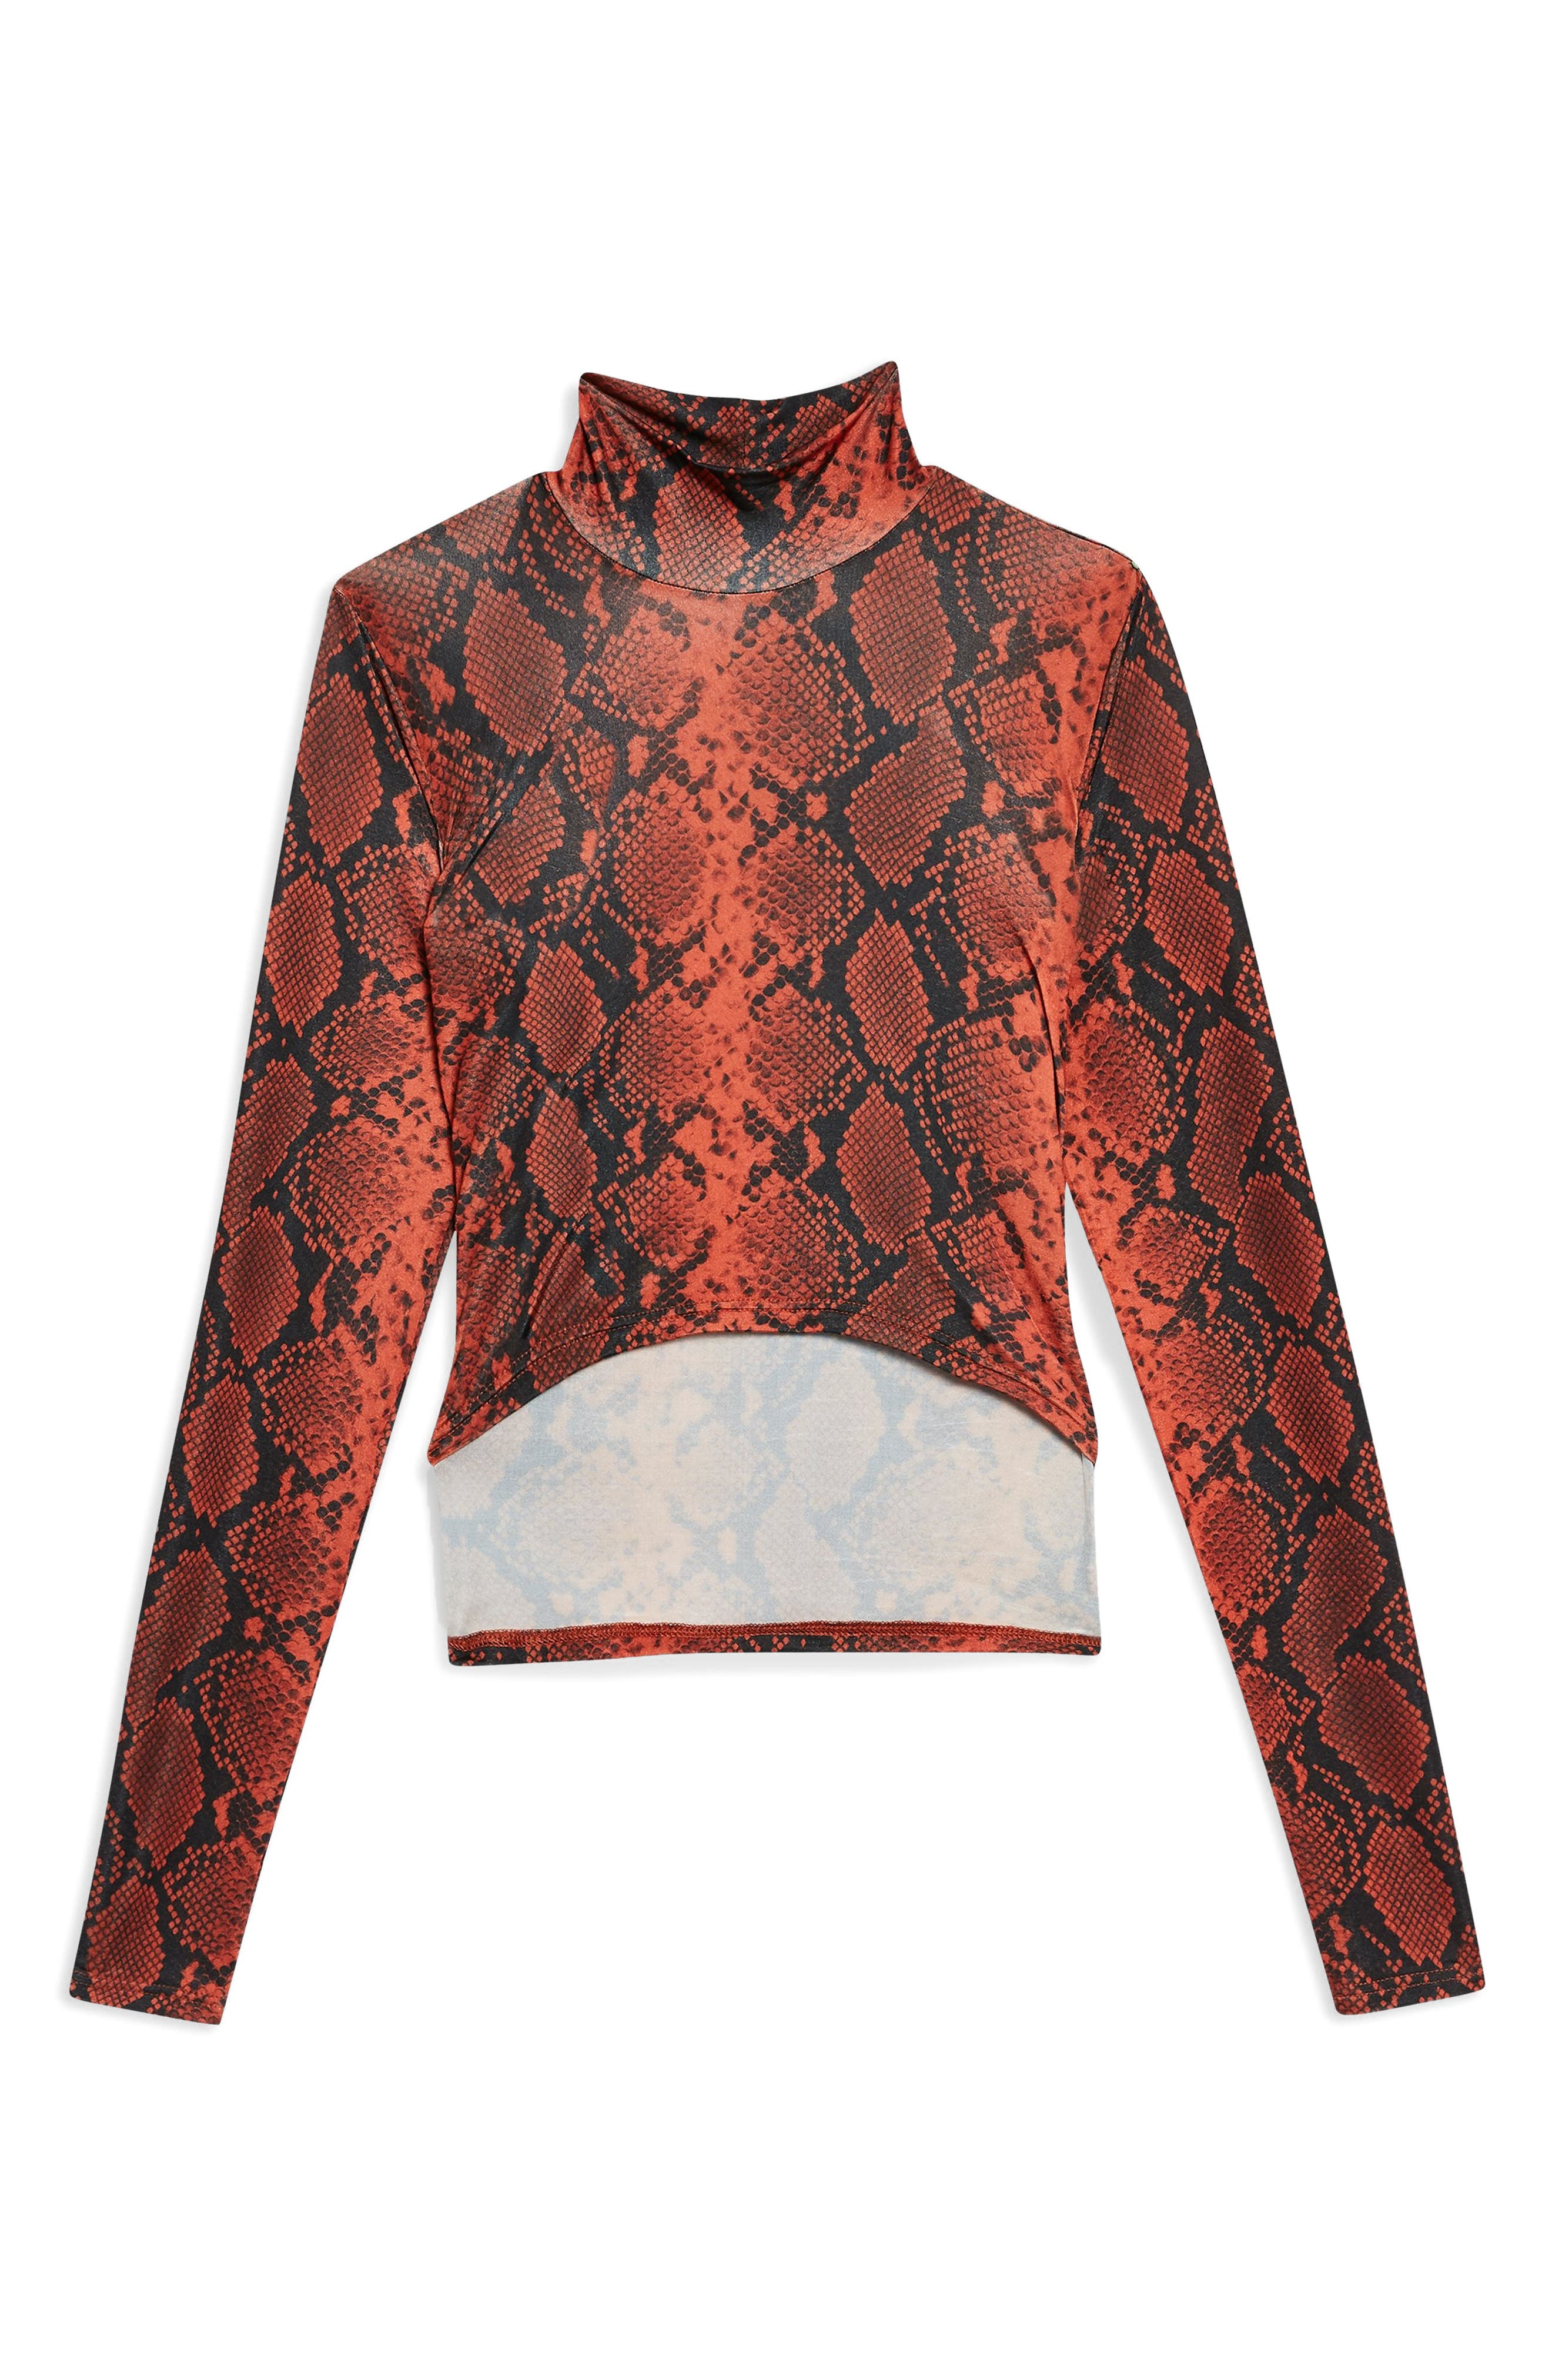 TOPSHOP, Snake Print Wrap High Neck Top, Alternate thumbnail 4, color, 600